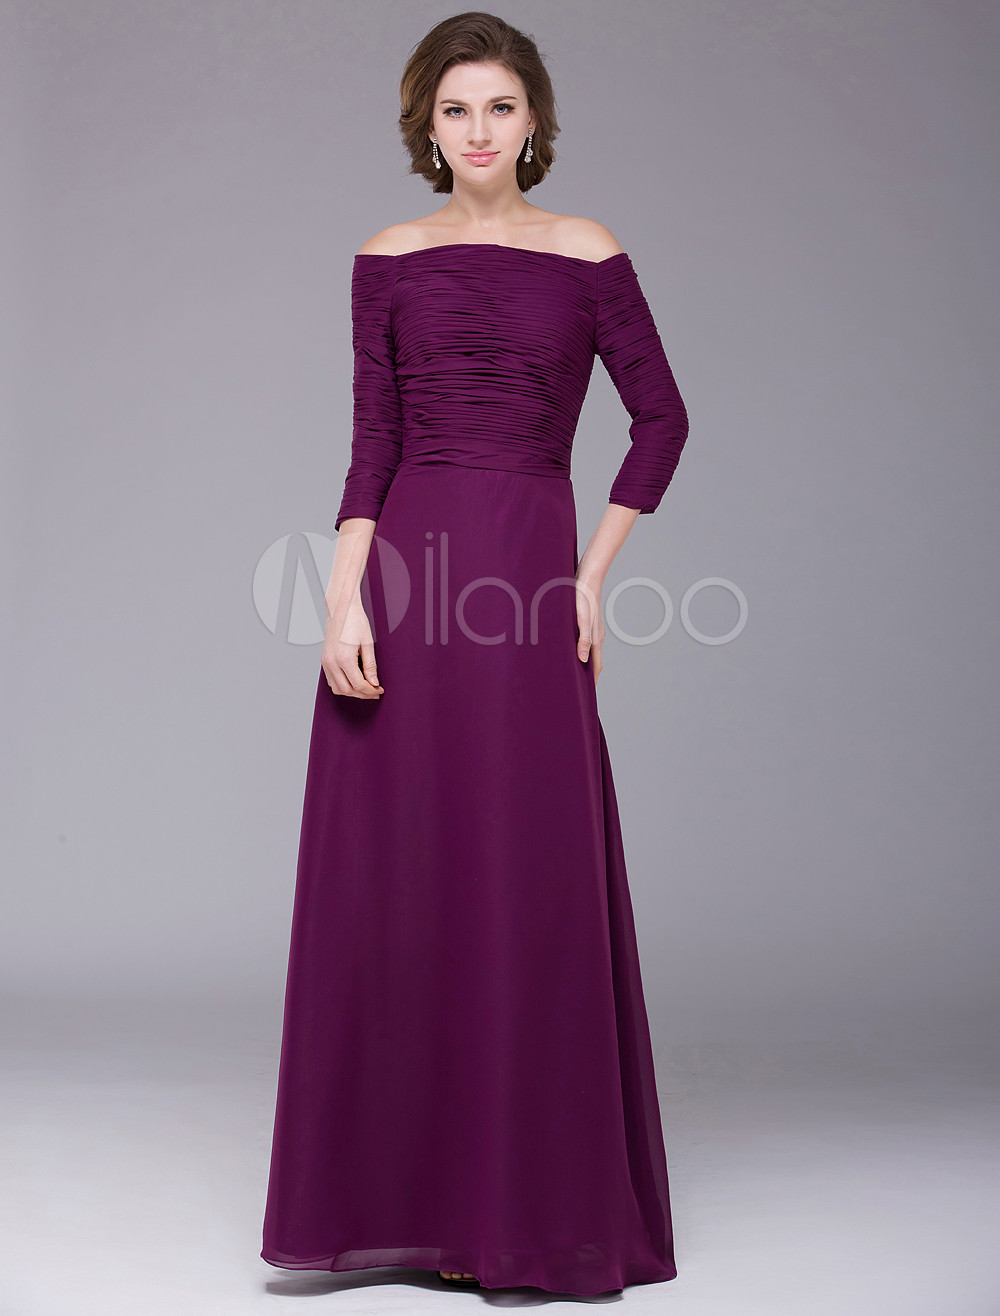 Grape A-line Pleated Off-The-Shoulder Chiffon Glamourous Bridal Mother Dress with Bateau Neck 3/4 Length Sleeves